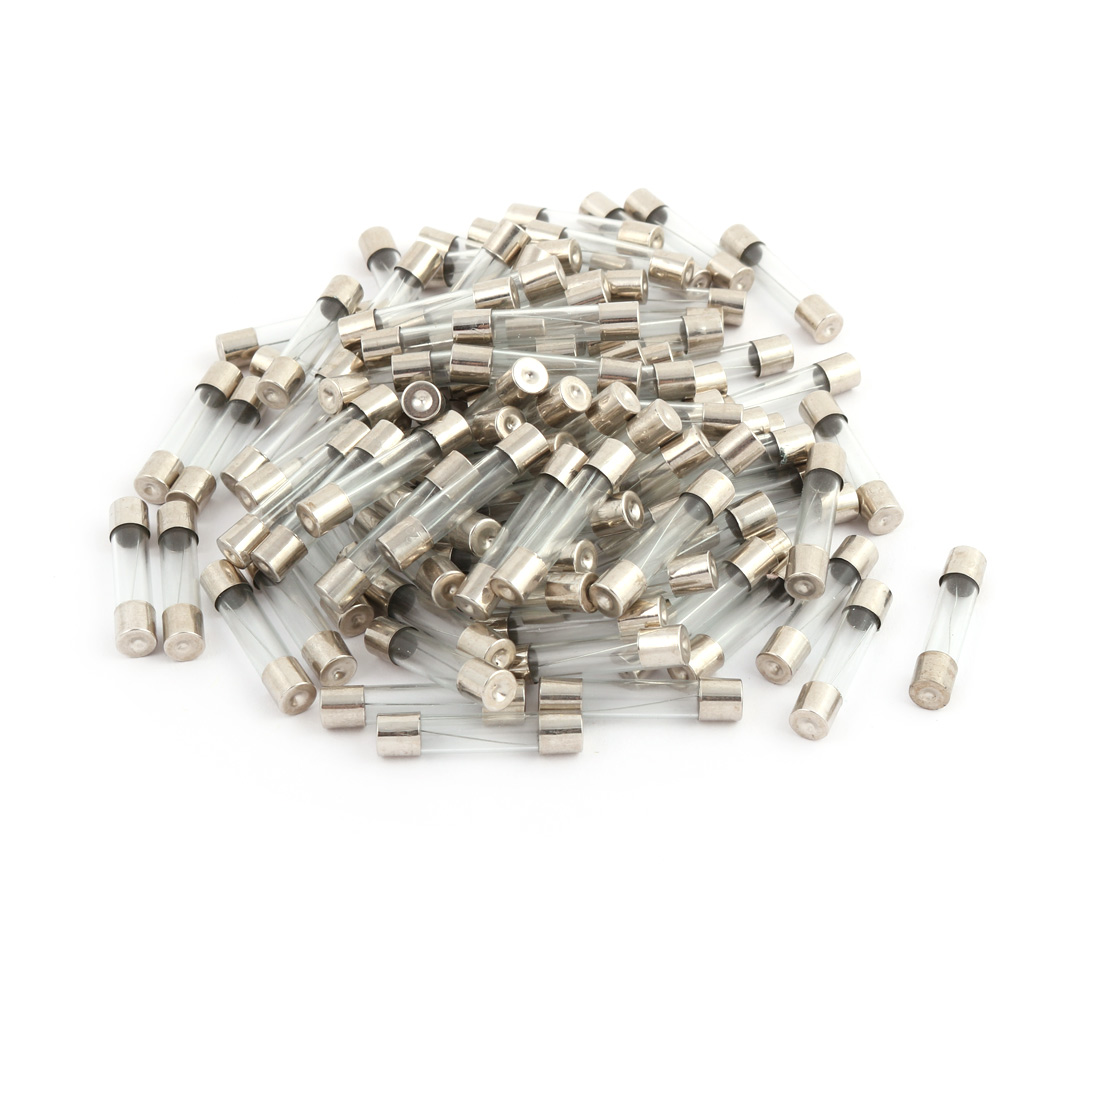 100 Pcs 250V 30A 6mm x 30mm Glass Tube Fuse Silver Tone for Electric Safety